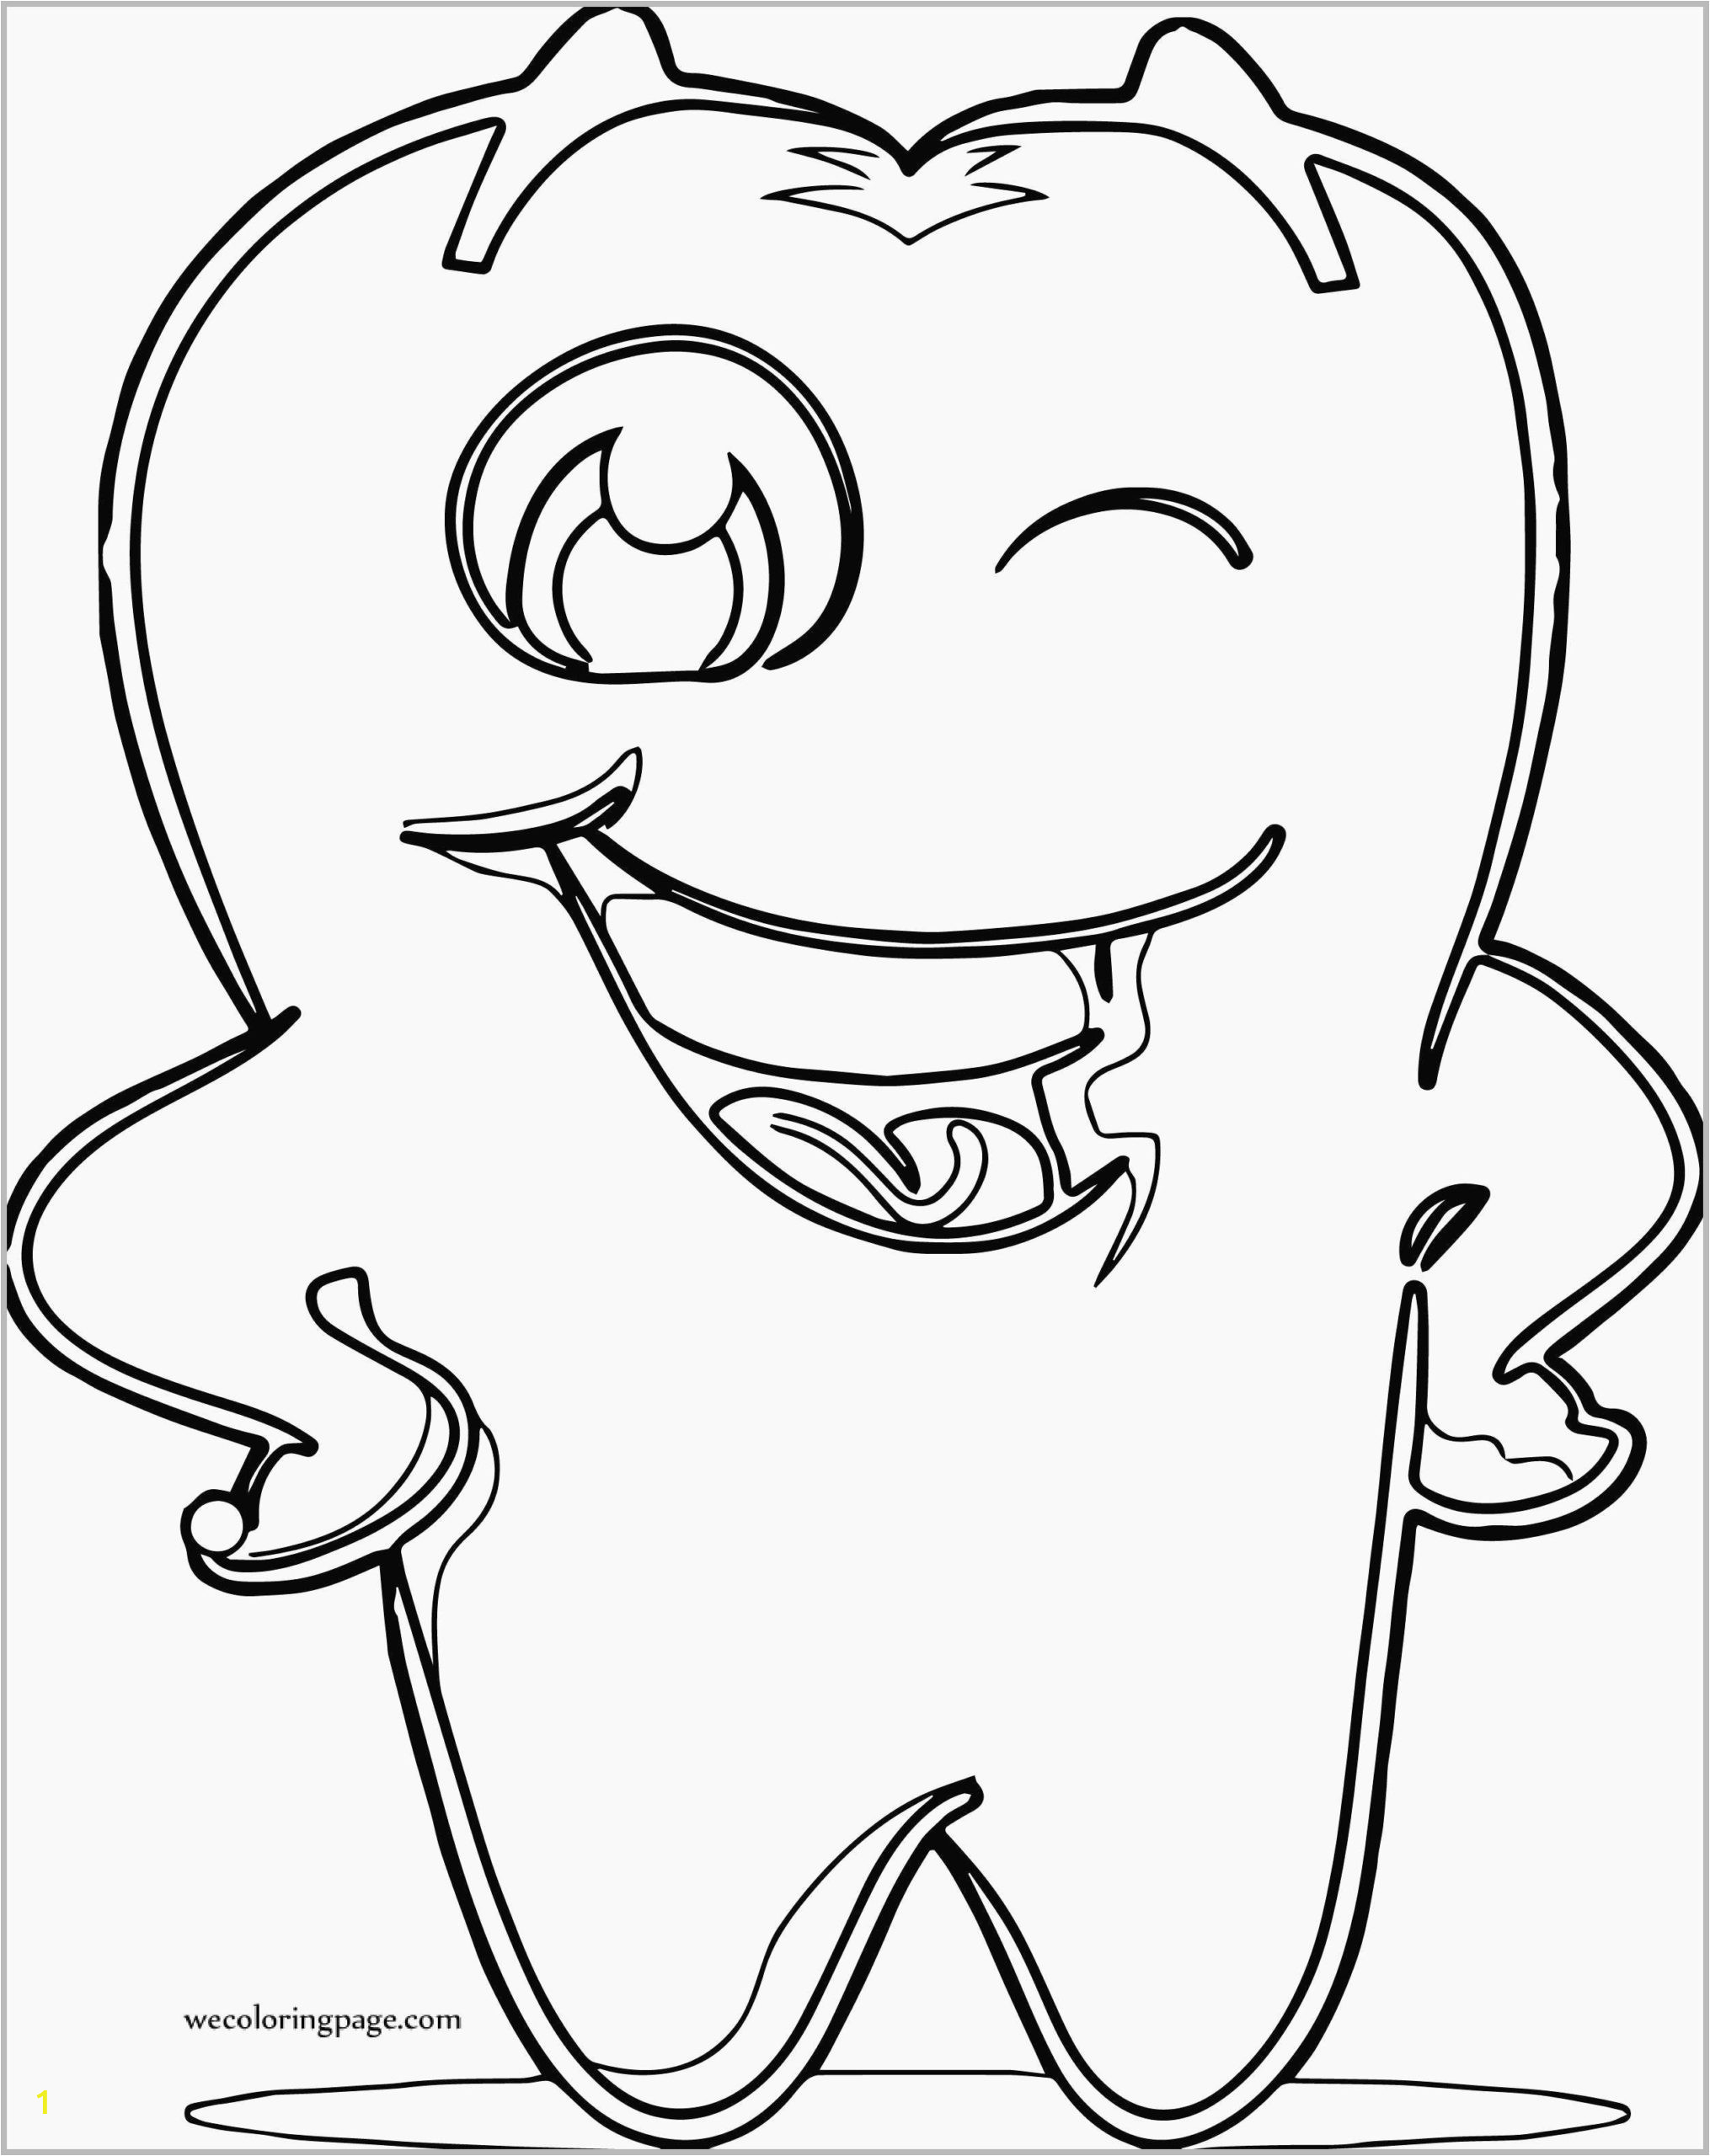 dental coloring pages printable for adults free to print activities book associates childrens dentist near me office tooth gems molar teeth candid surgery decay scaled